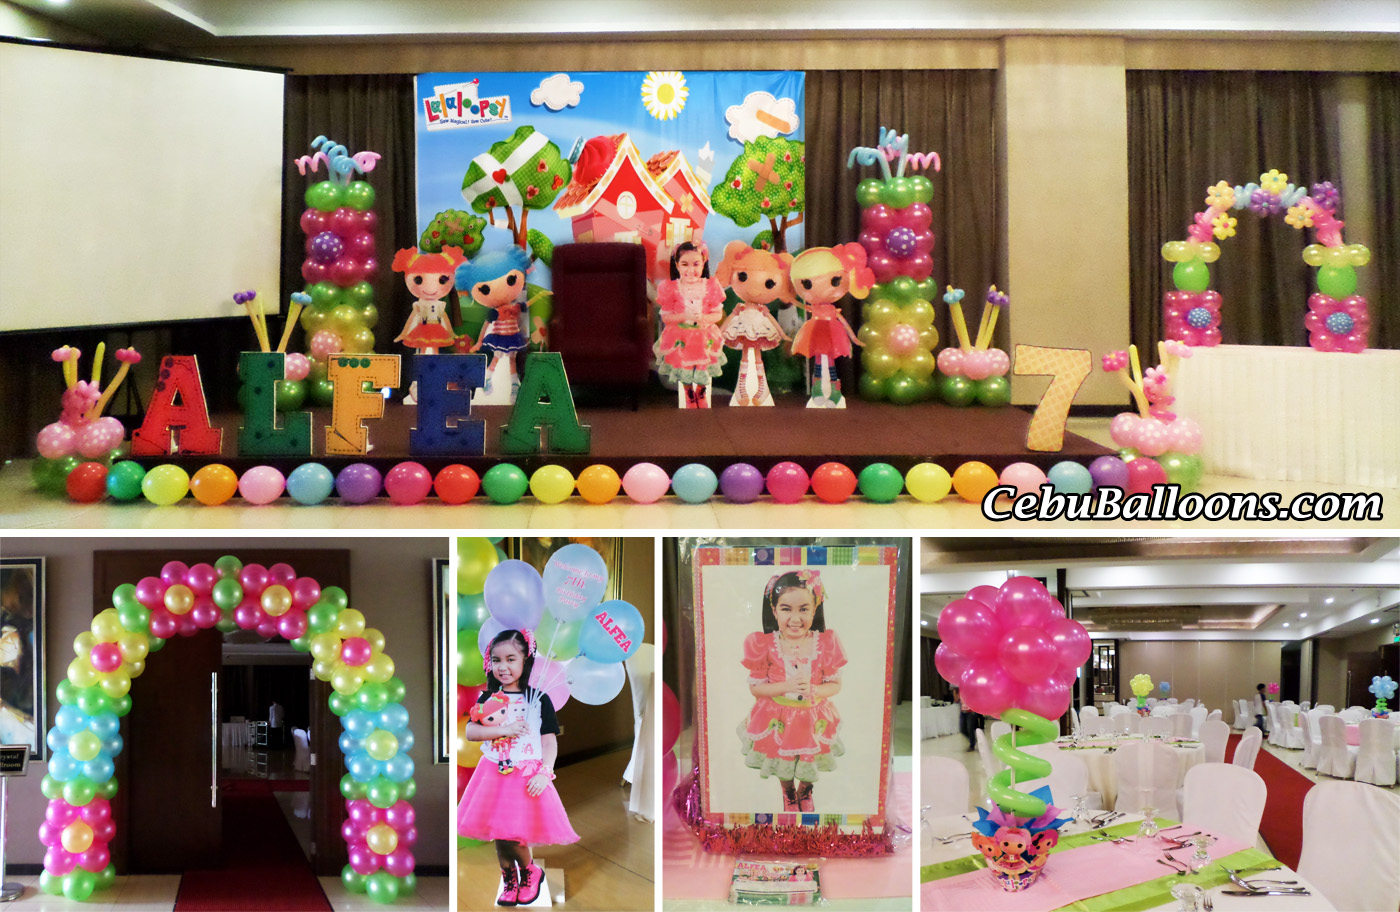 Lalaloopsy Theme Balloon Decoration Party Supplies u0026 Party Entertainers at Mandarin Plaza Hotel & Mandarin Plaza Hotel | Cebu Balloons and Party Supplies